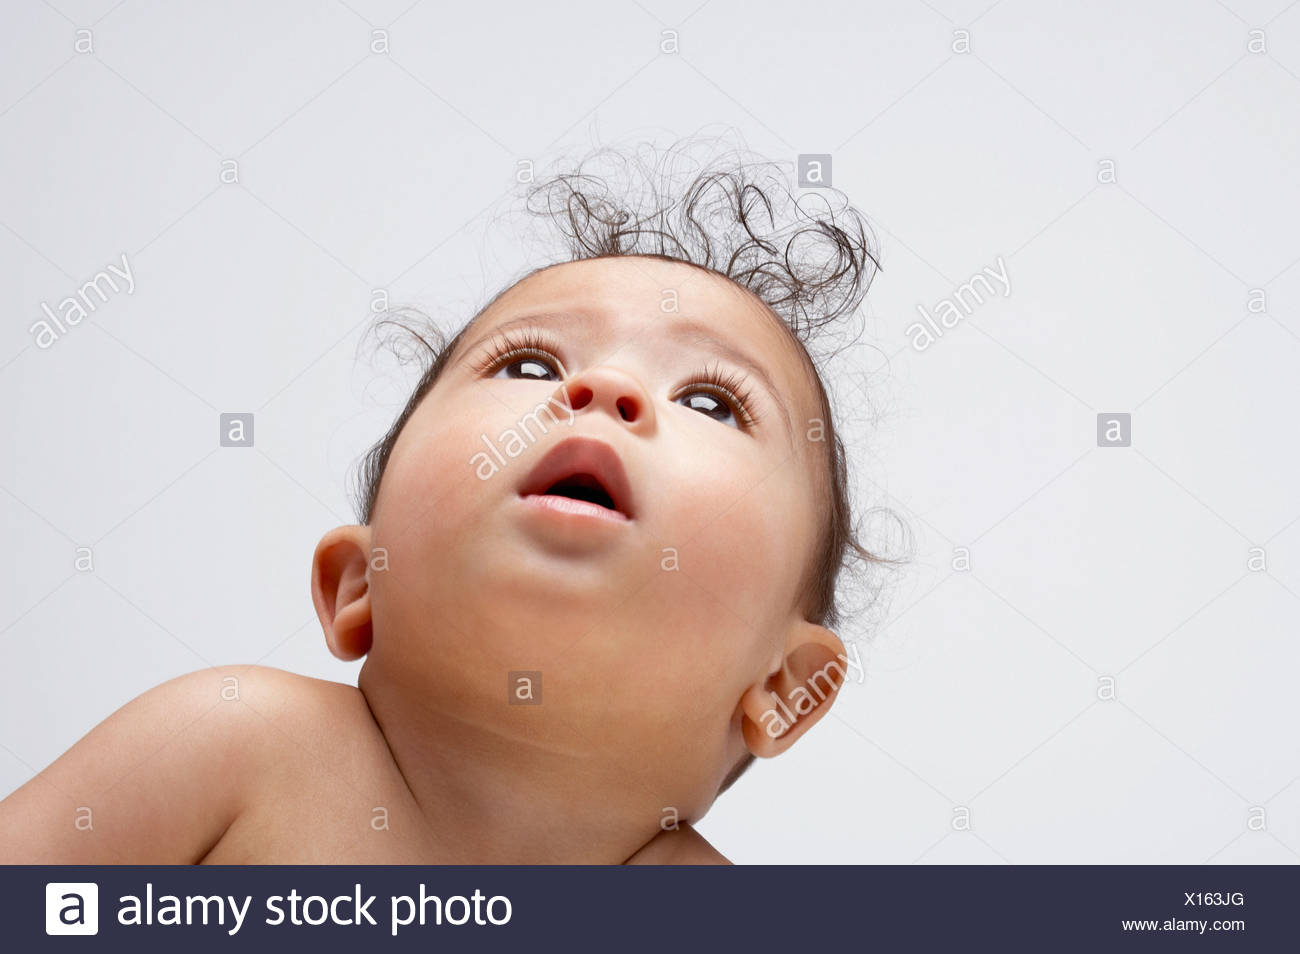 A baby boy looking up - Stock Image